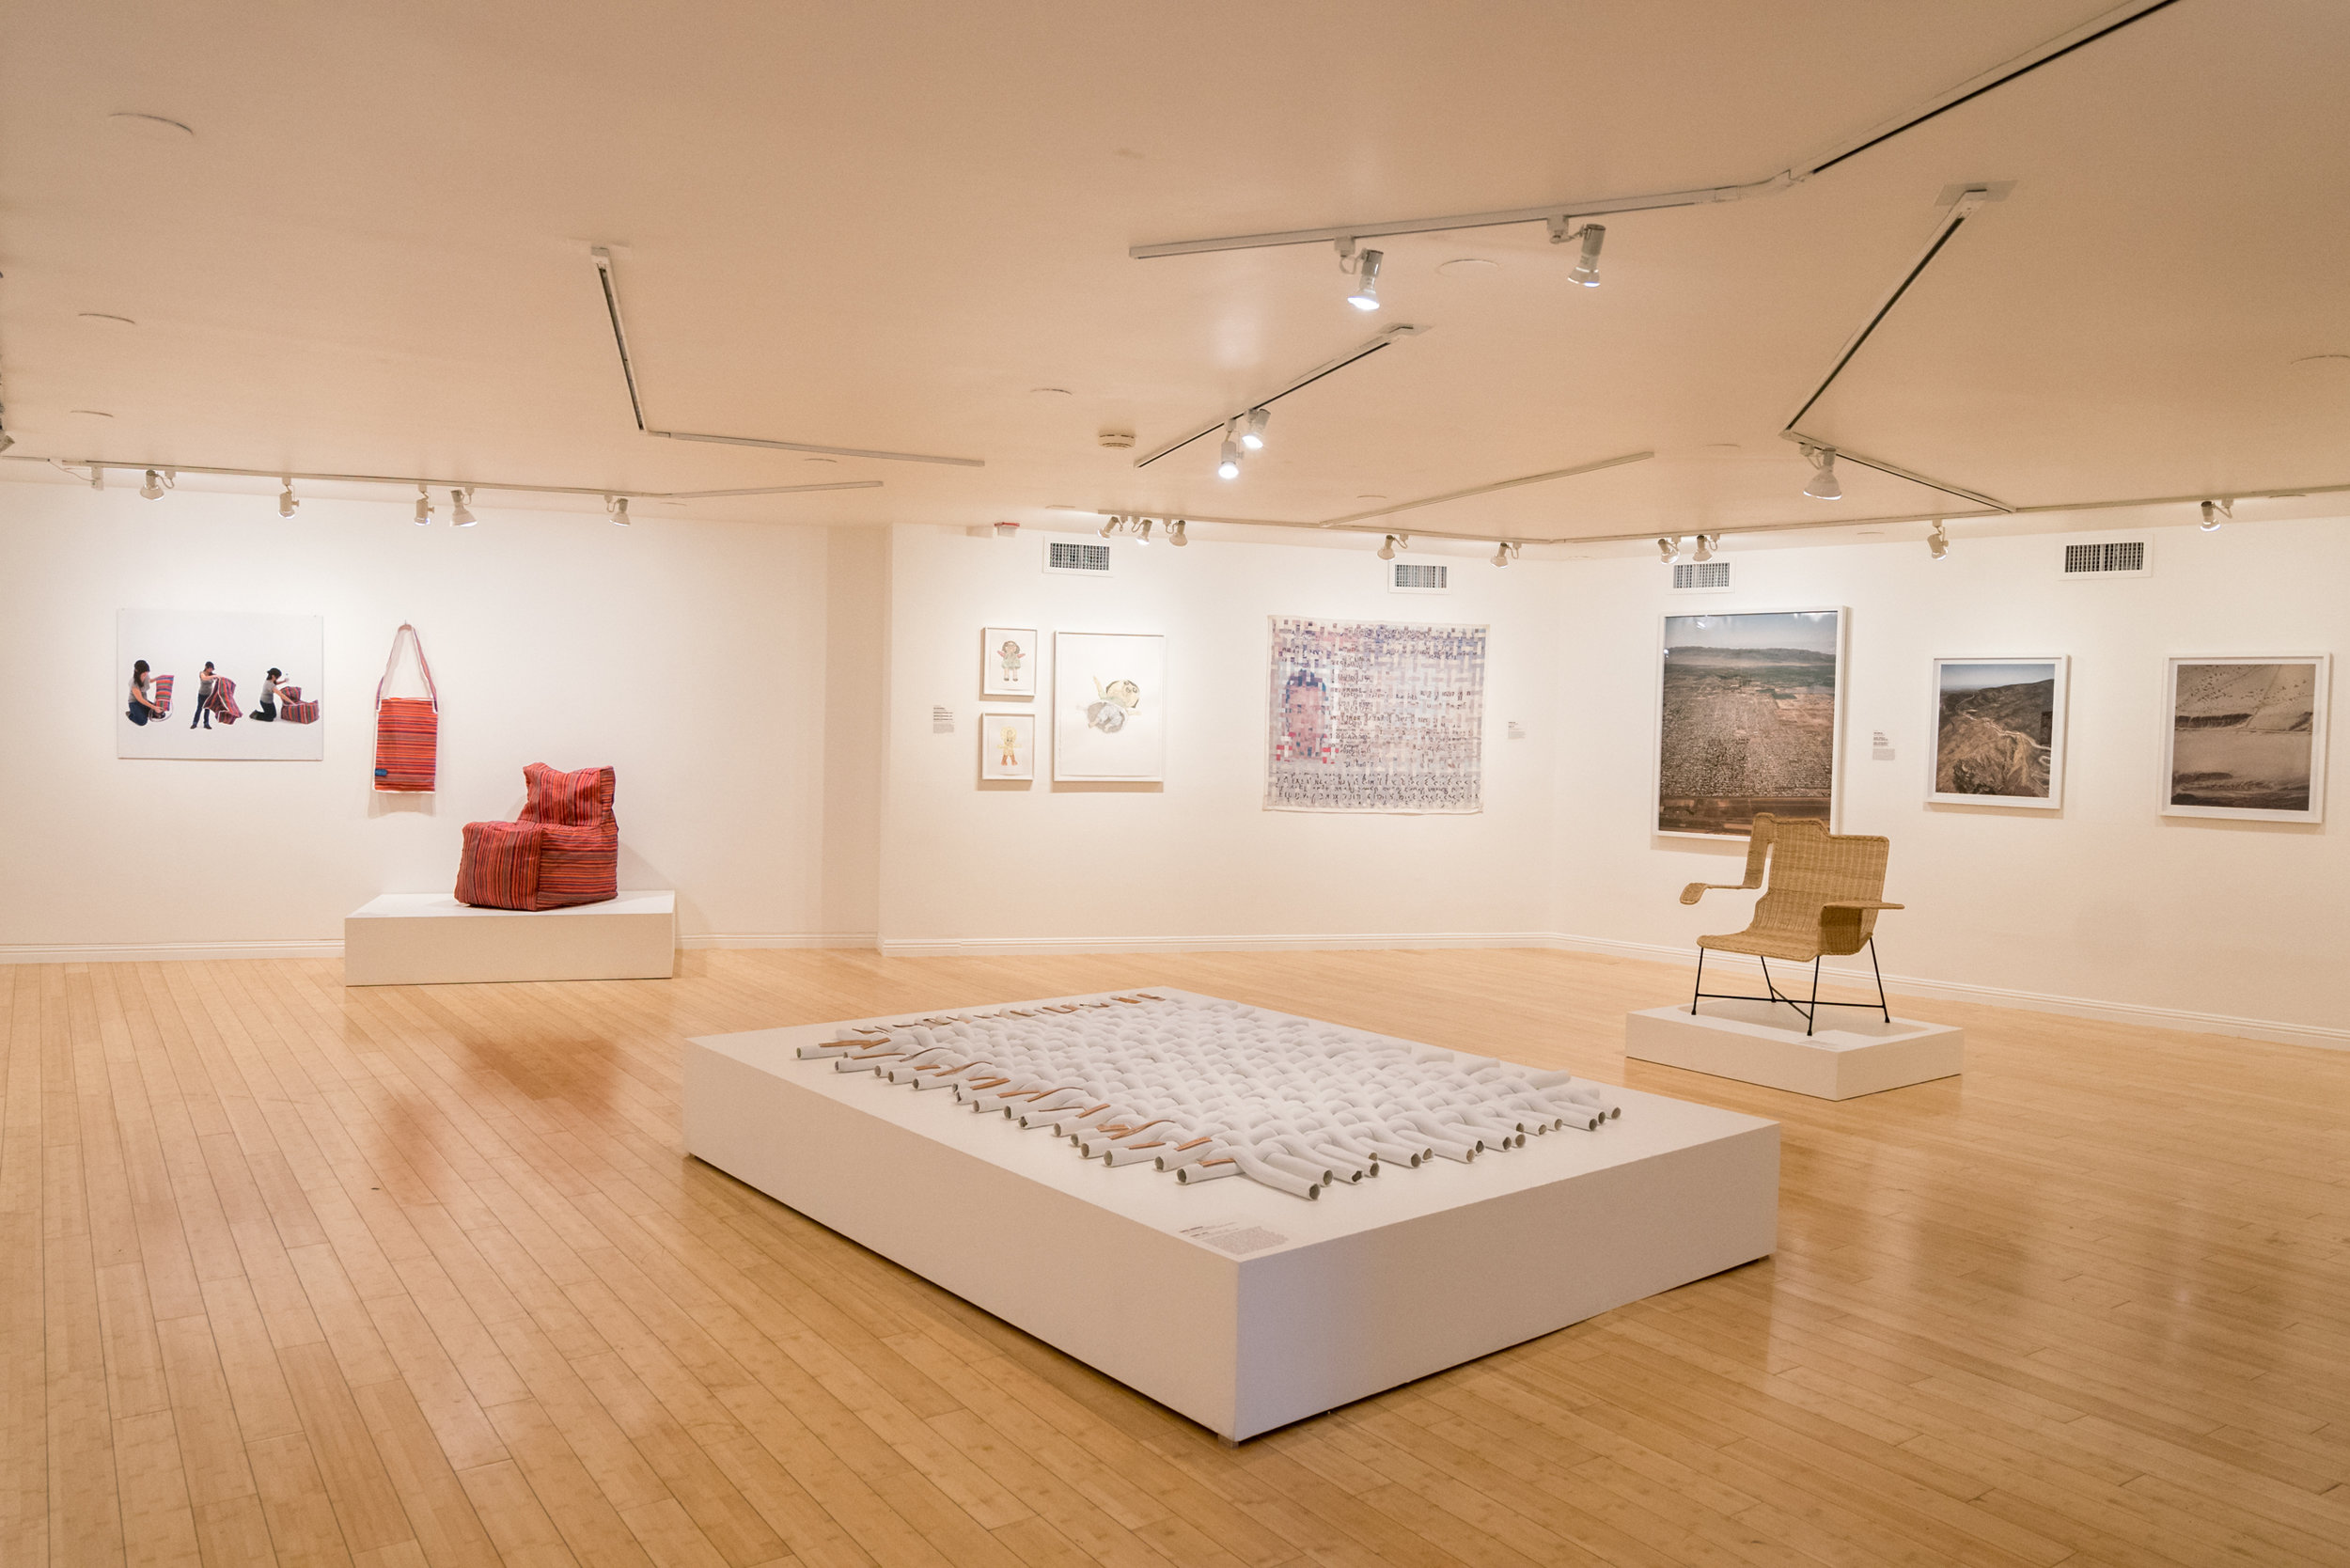 The US-Mexico Border - Place, Imagination, and Possibility    September 10, 2017 - January 7, 2018  Craft and Folk Art Museum, Los Angeles  Official exhibition for the Getty-sponsored initiative  Pacific Standard Time: LA/LA